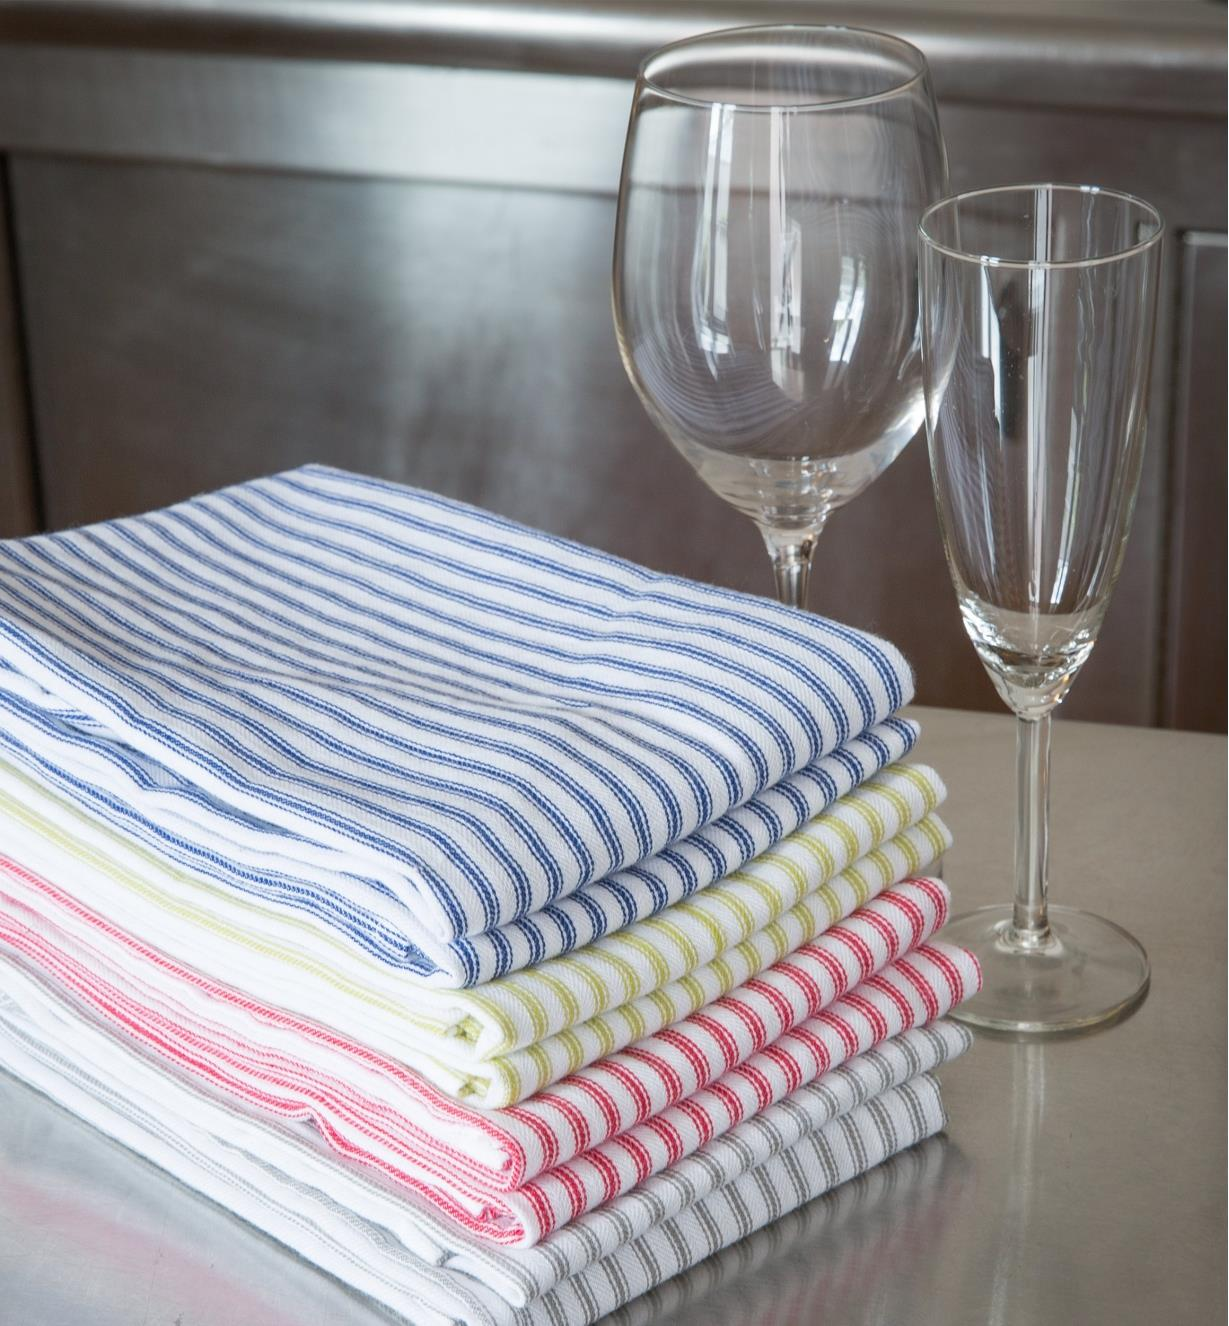 A stack of eight folded Glass Towels beside a wine glass and a champagne glass